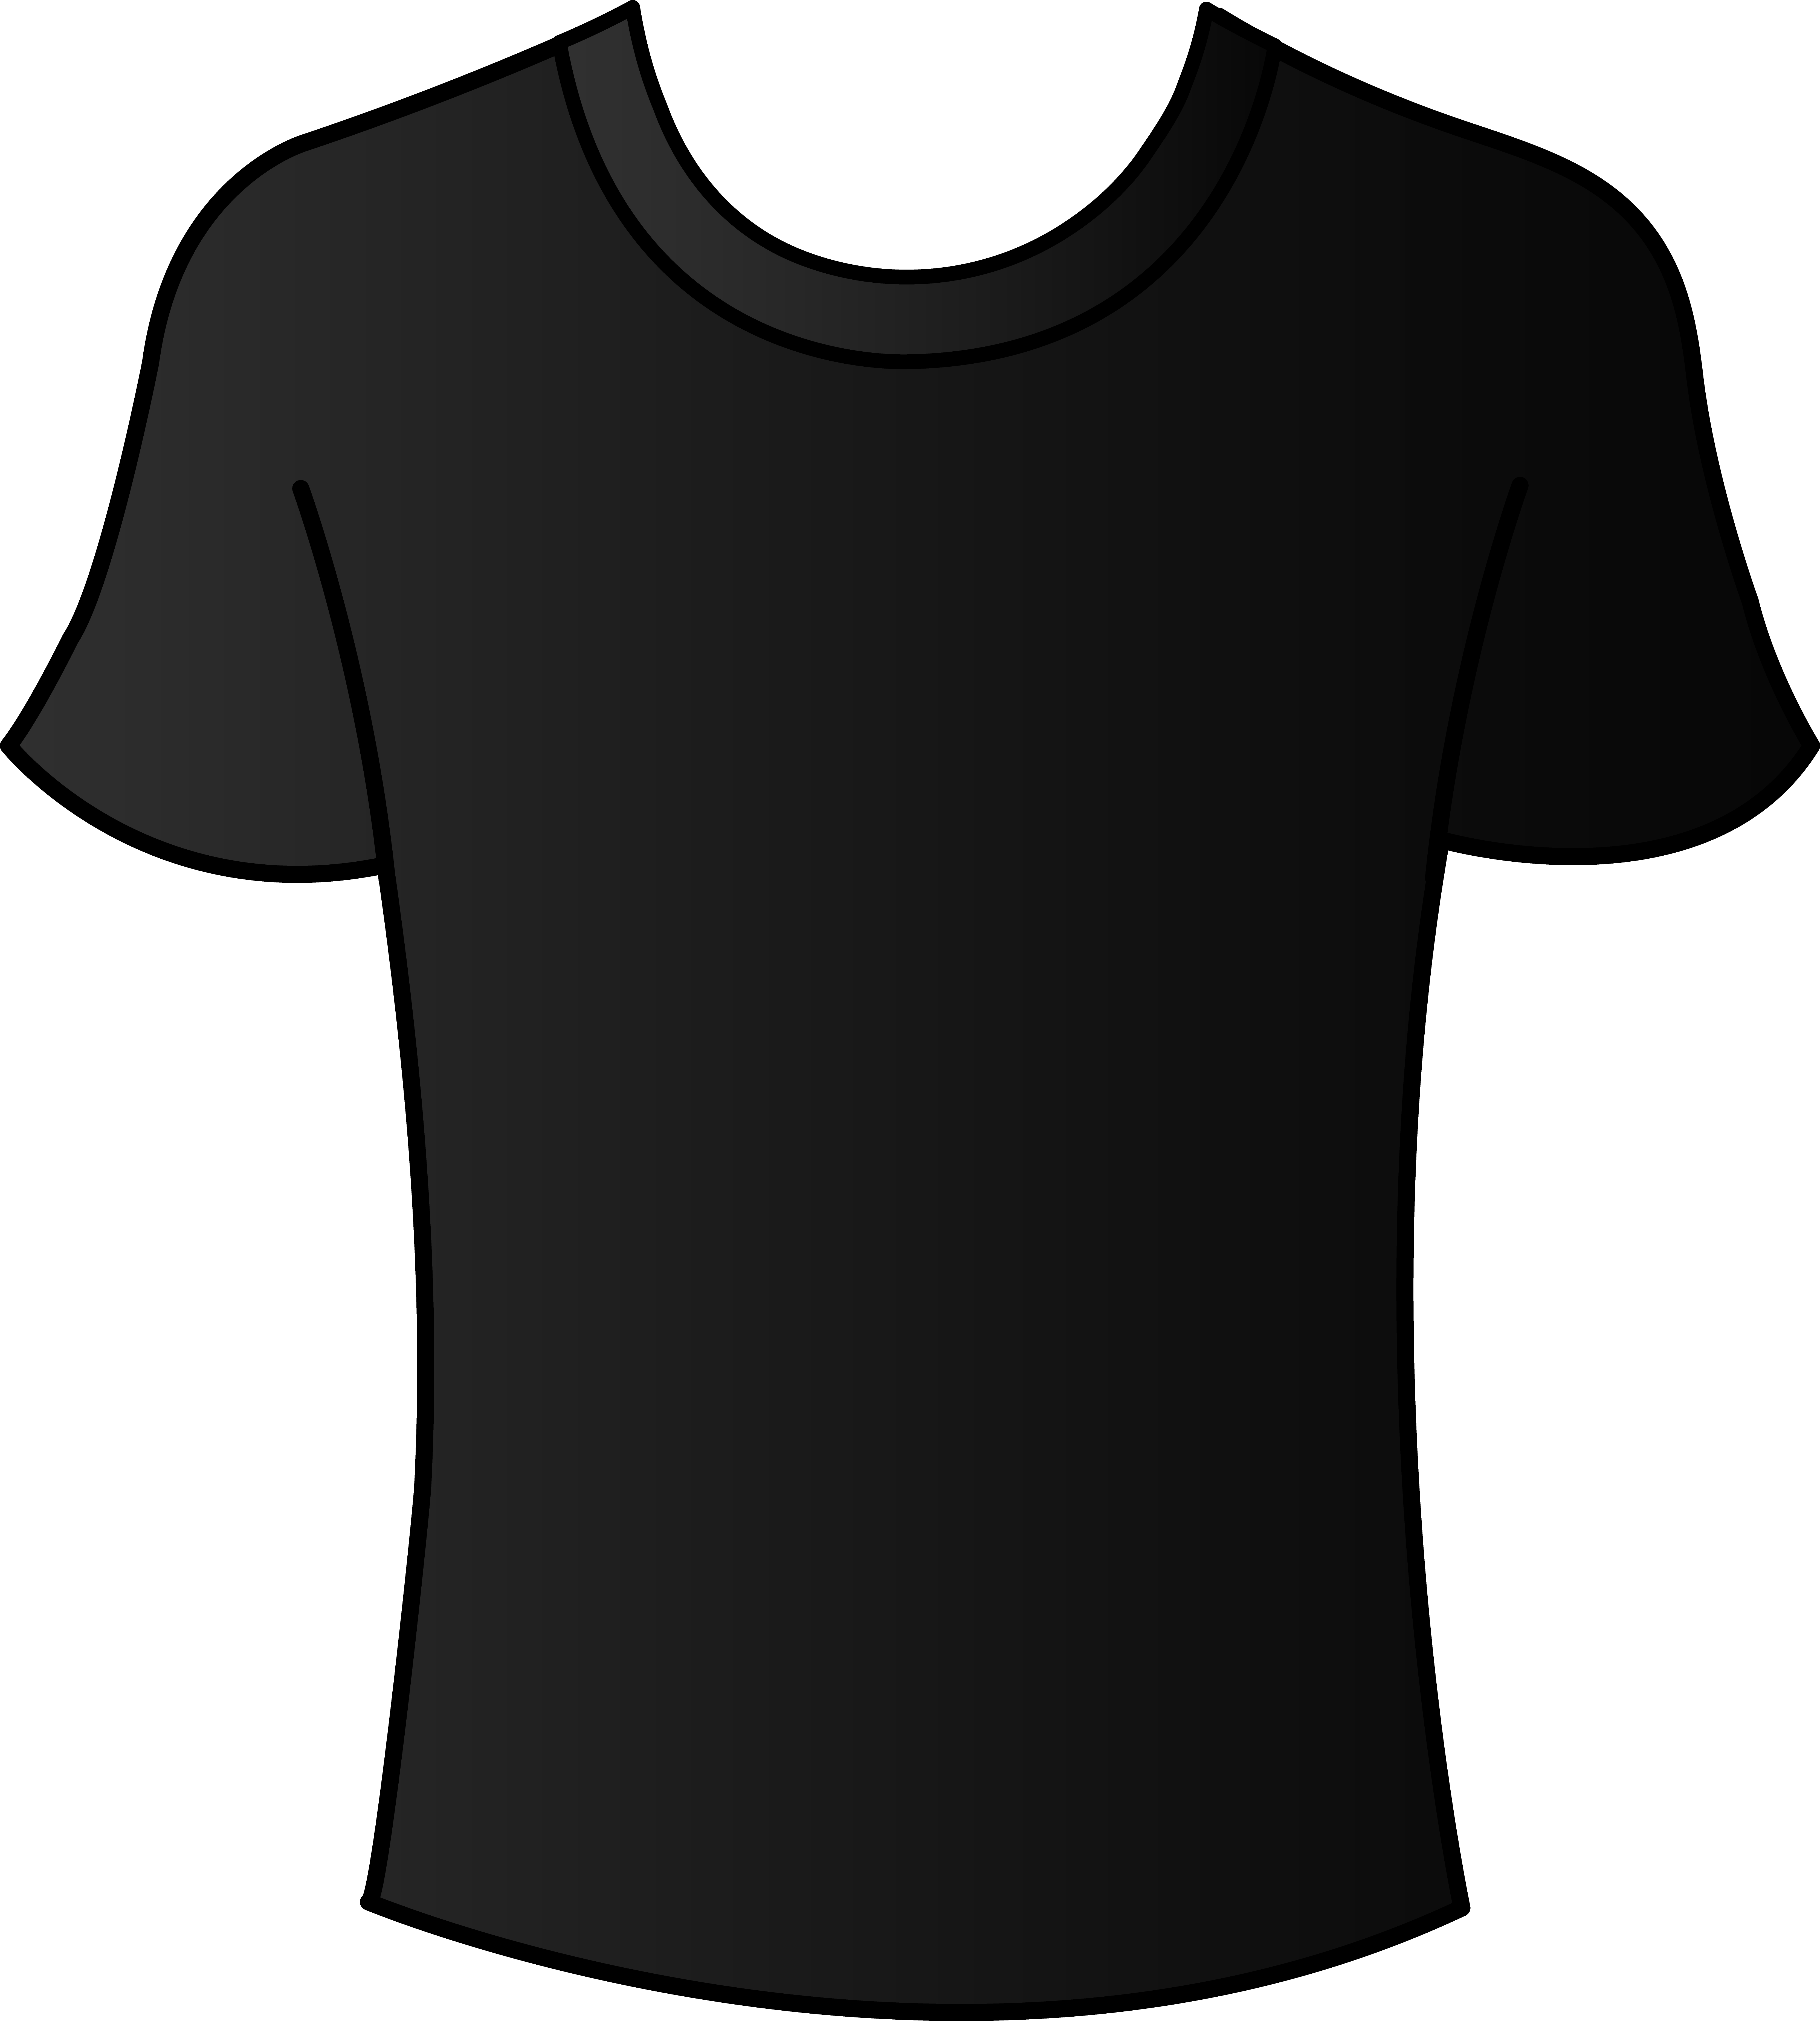 tshirt clipart shirt outline